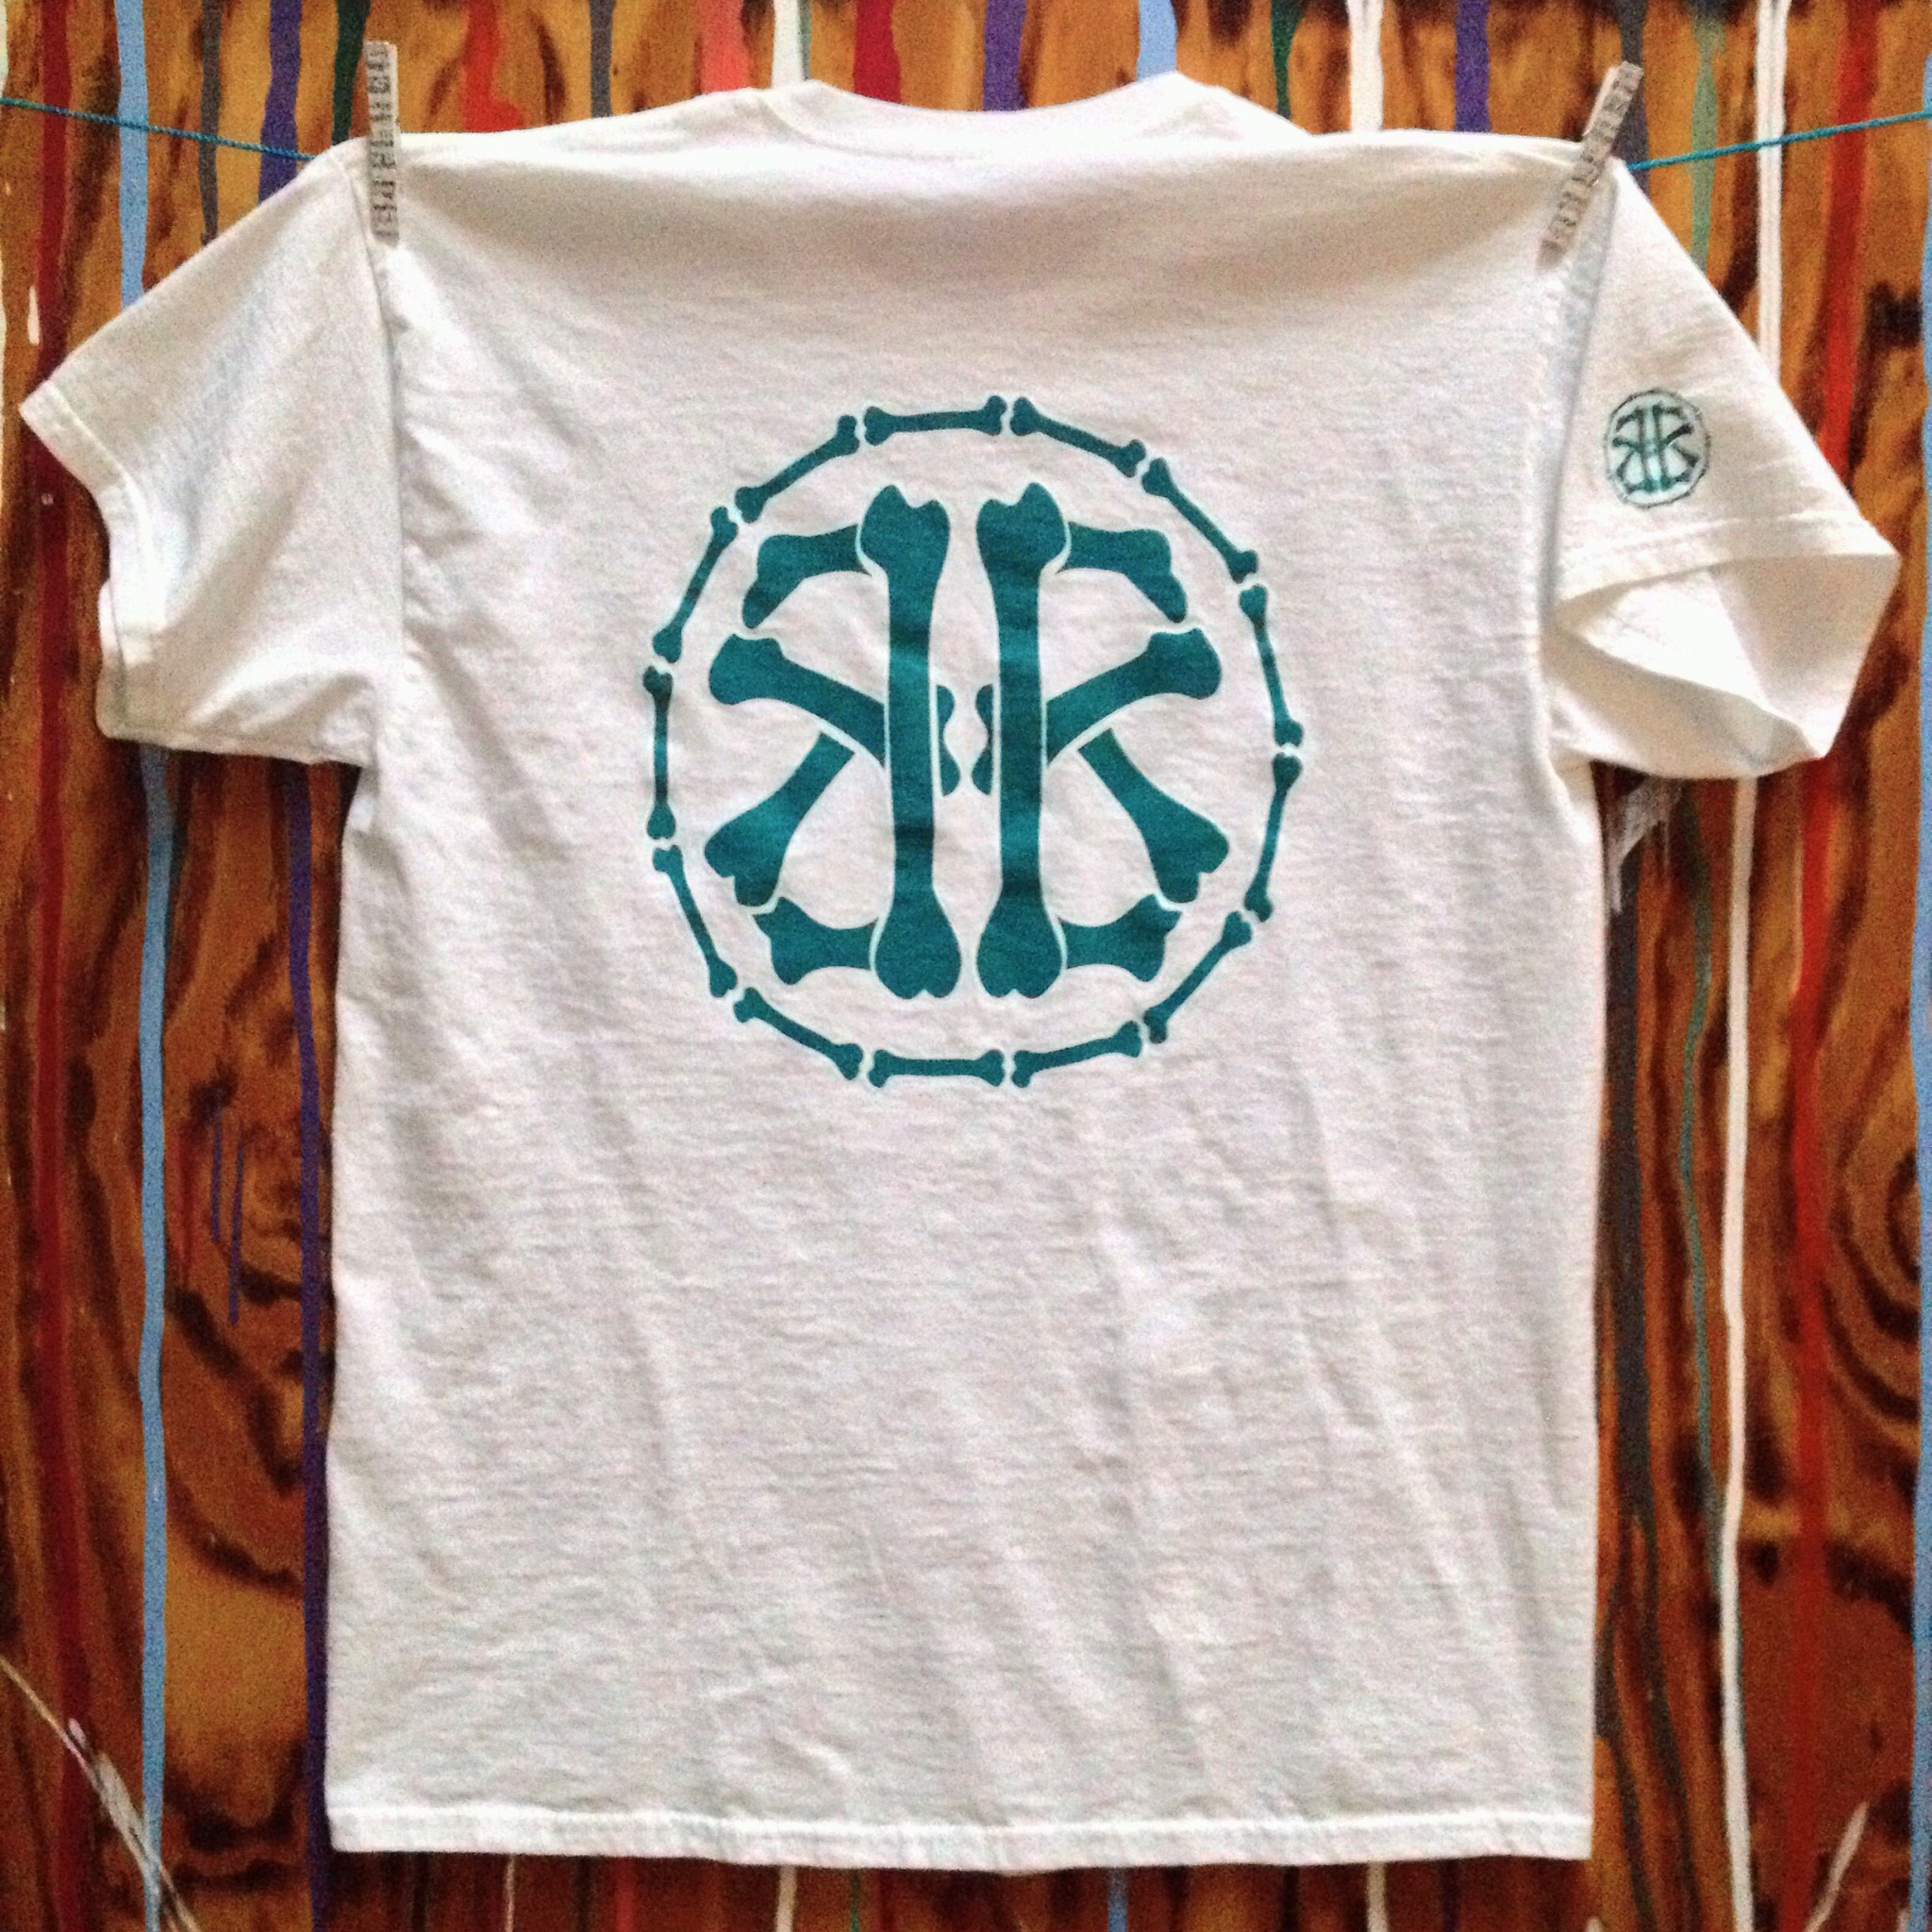 CIRCLE13 Unisex Tee...Two logo Colors available